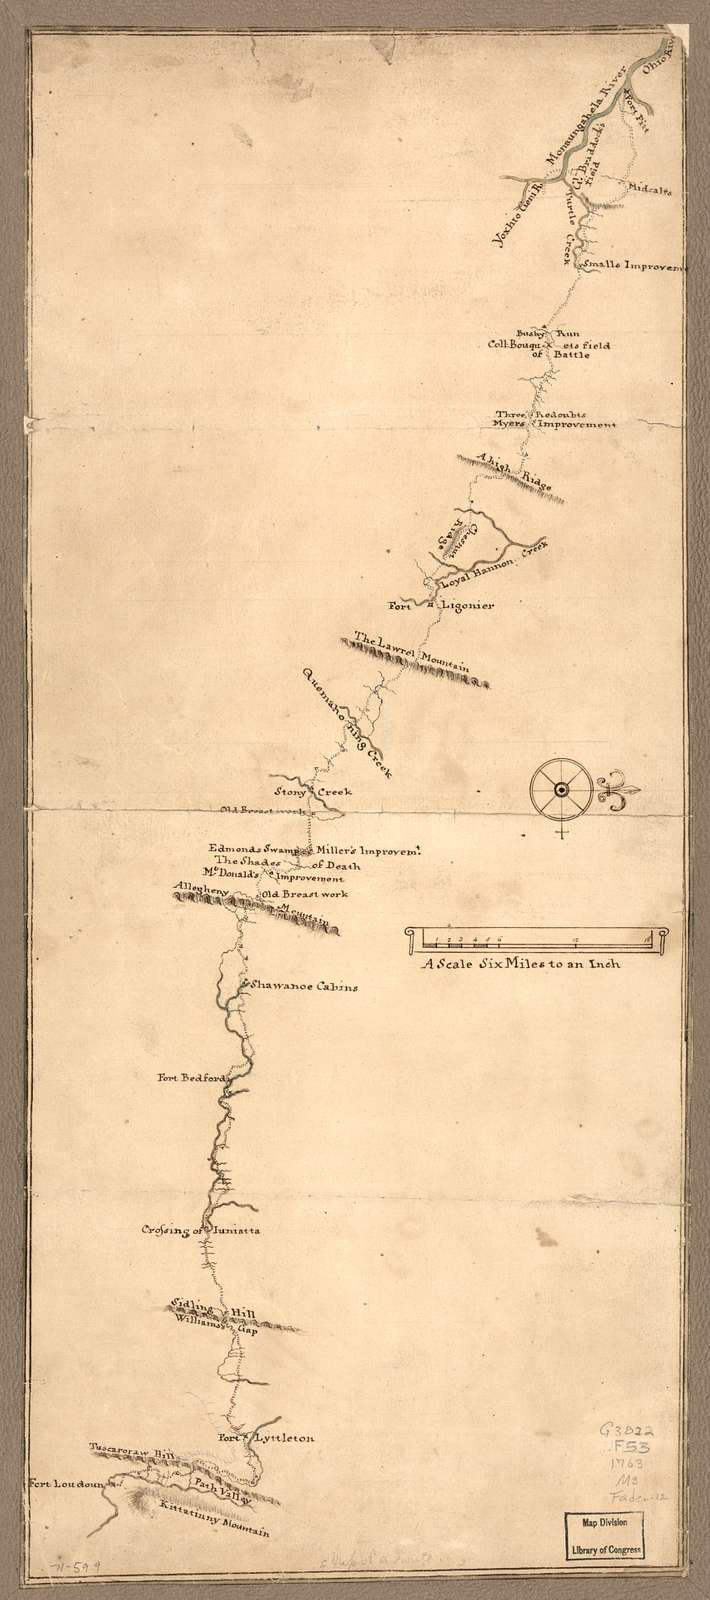 Map of a route through south west Pennsylvania from Fort Loudon, Franklin Co. to Fort Pitt, Pittsburgh.